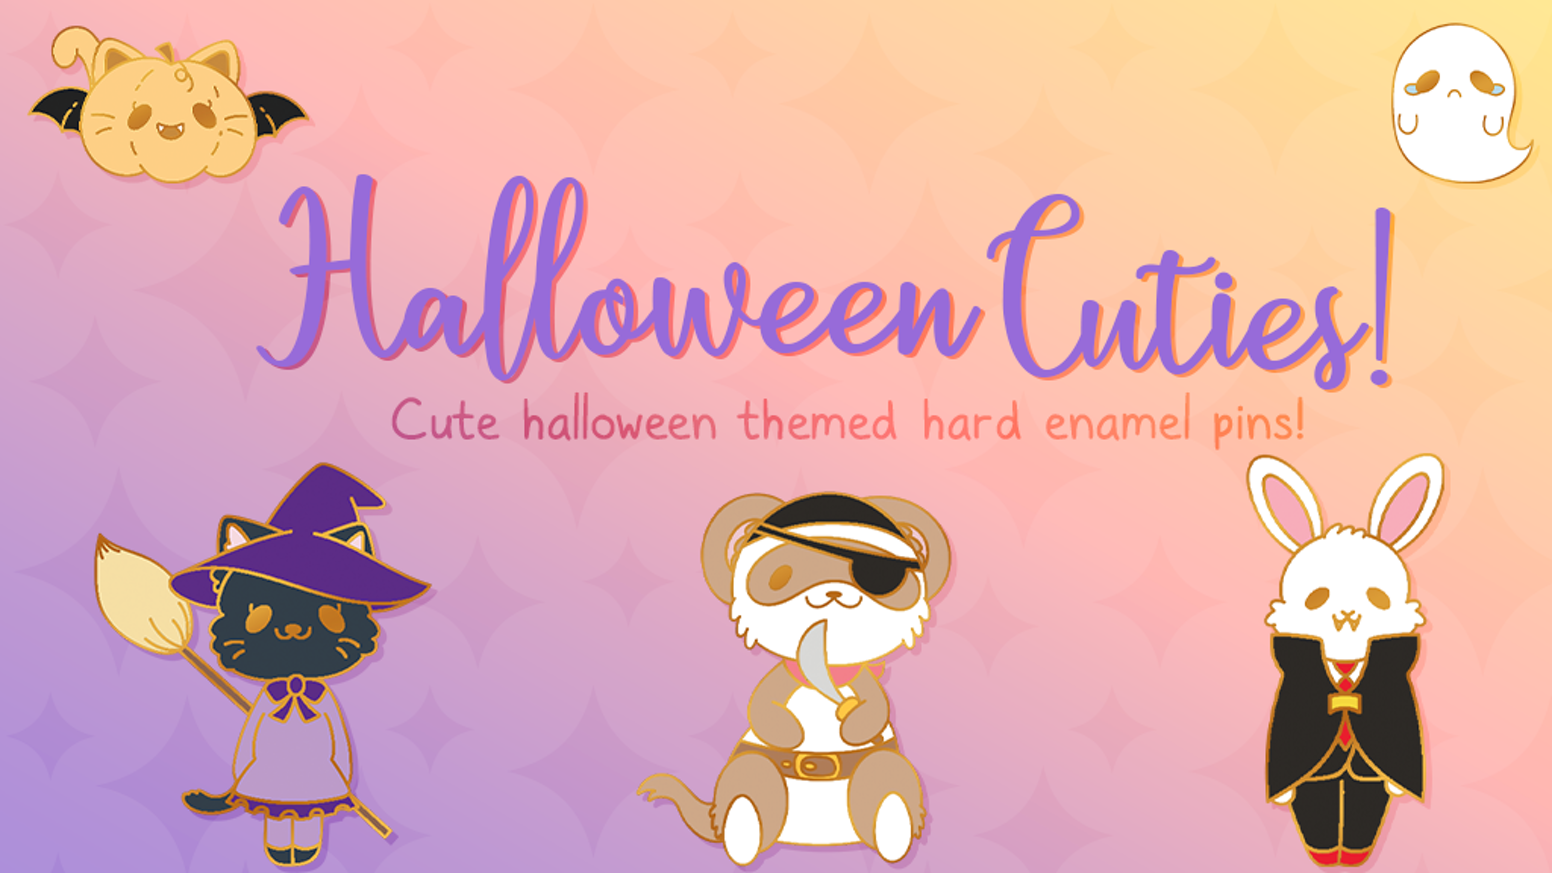 Cute hard enamel halloween inspired pins! All designs are original to this collection!